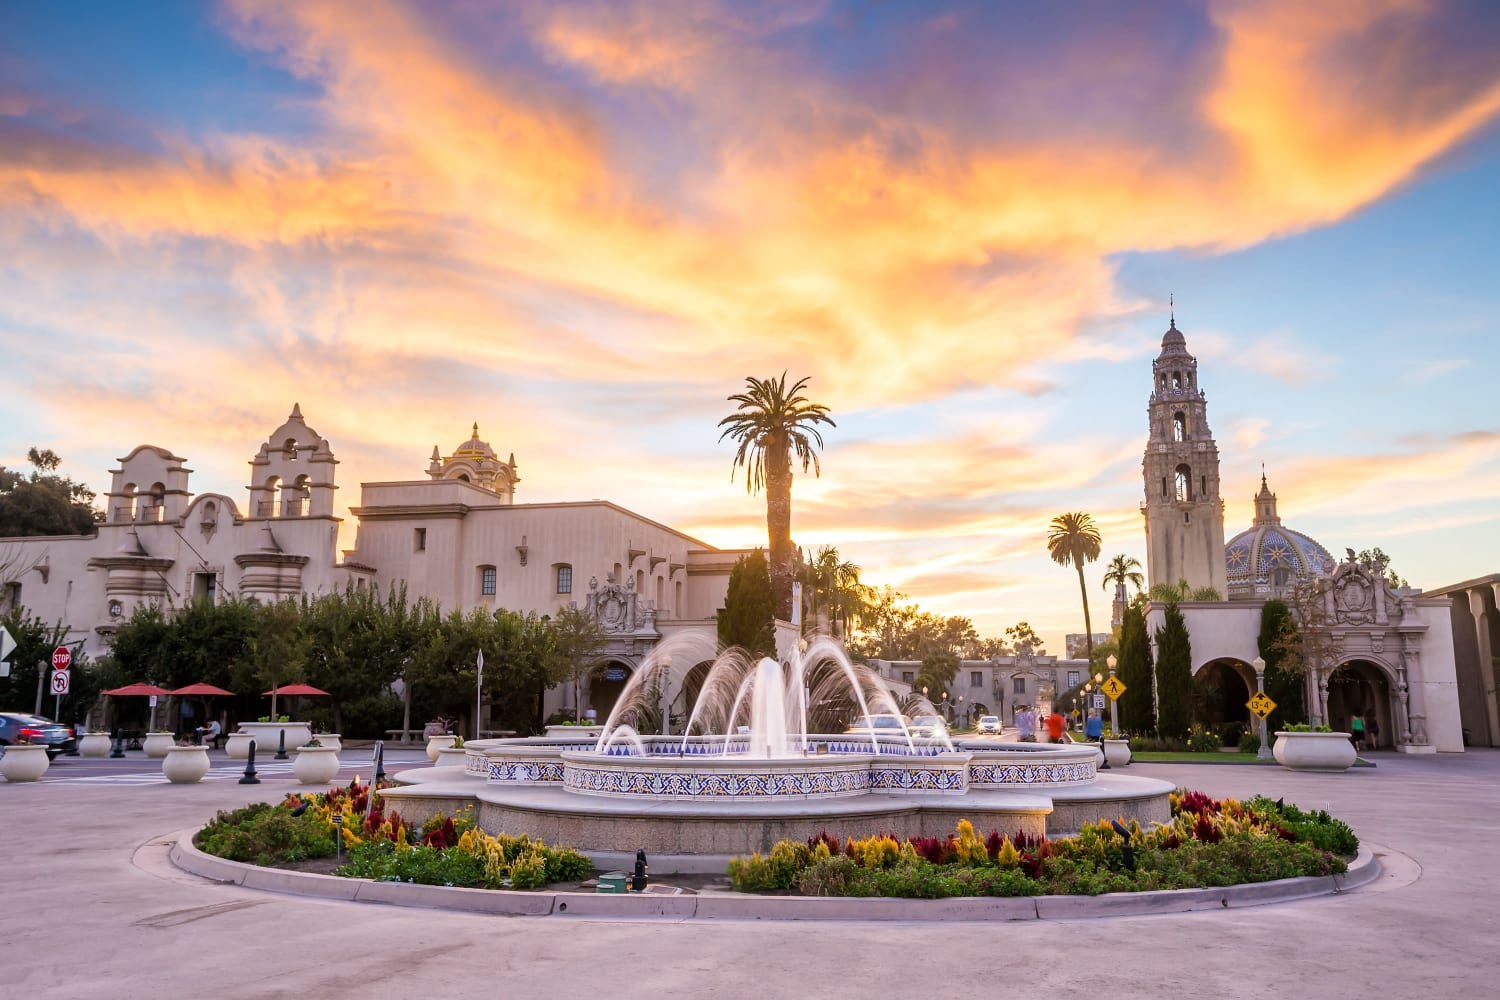 Beautiful fountain and sunset at Fashion Terrace in San Diego, California